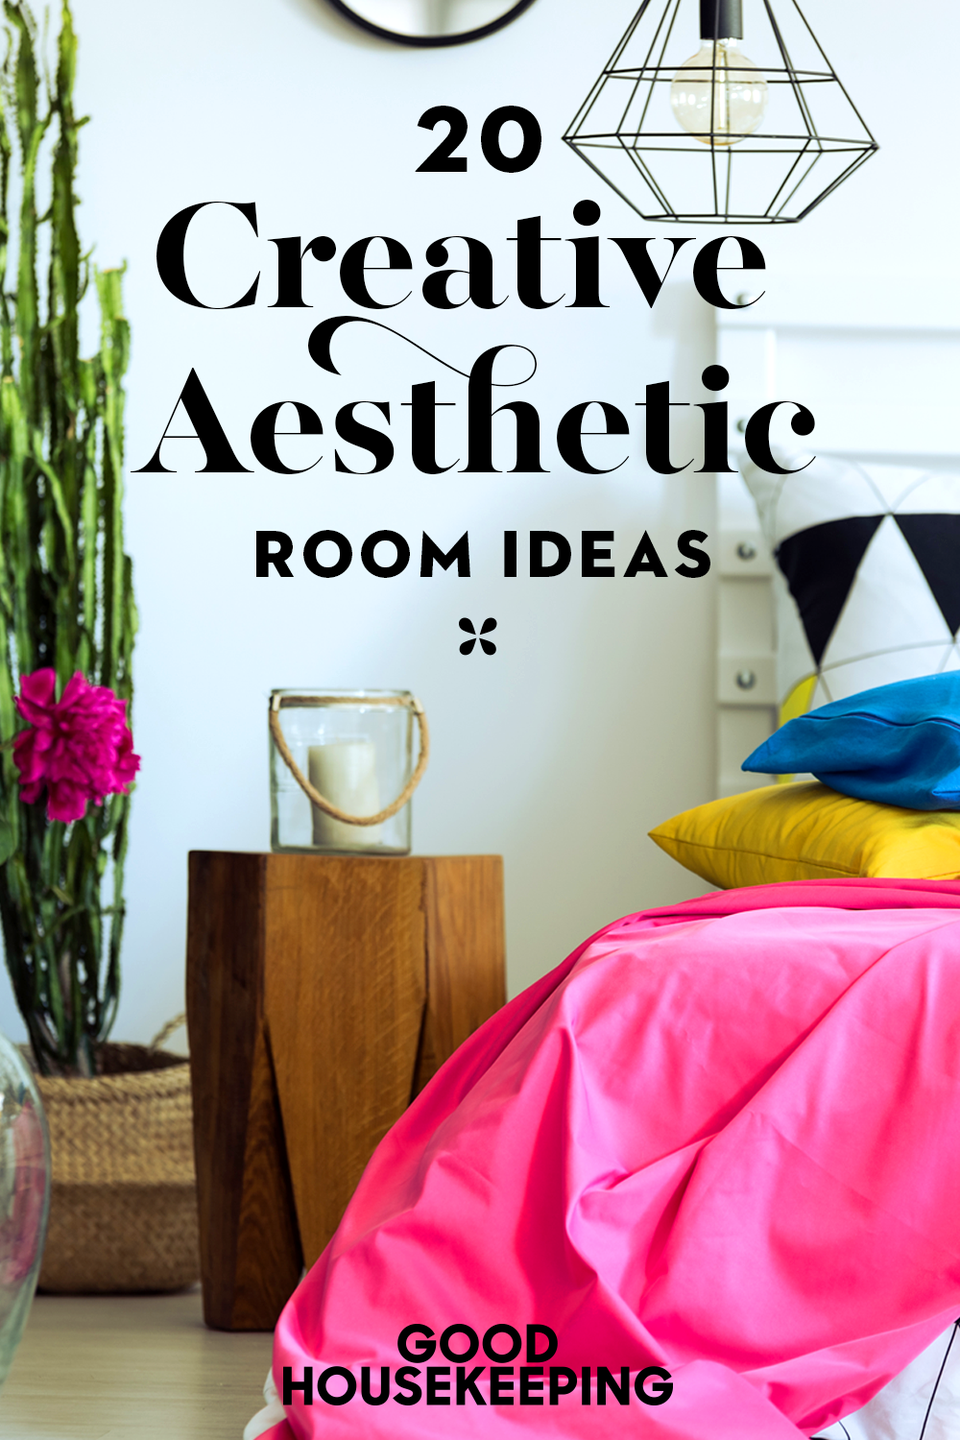 "<p>Pin this article for later! For more, follow <a href=""https://www.pinterest.com/goodhousemag/?auto_follow=1"" rel=""nofollow noopener"" target=""_blank"" data-ylk=""slk:Good Housekeeping"" class=""link rapid-noclick-resp""><em>Good Housekeeping</em></a> on Pinterest.</p>"